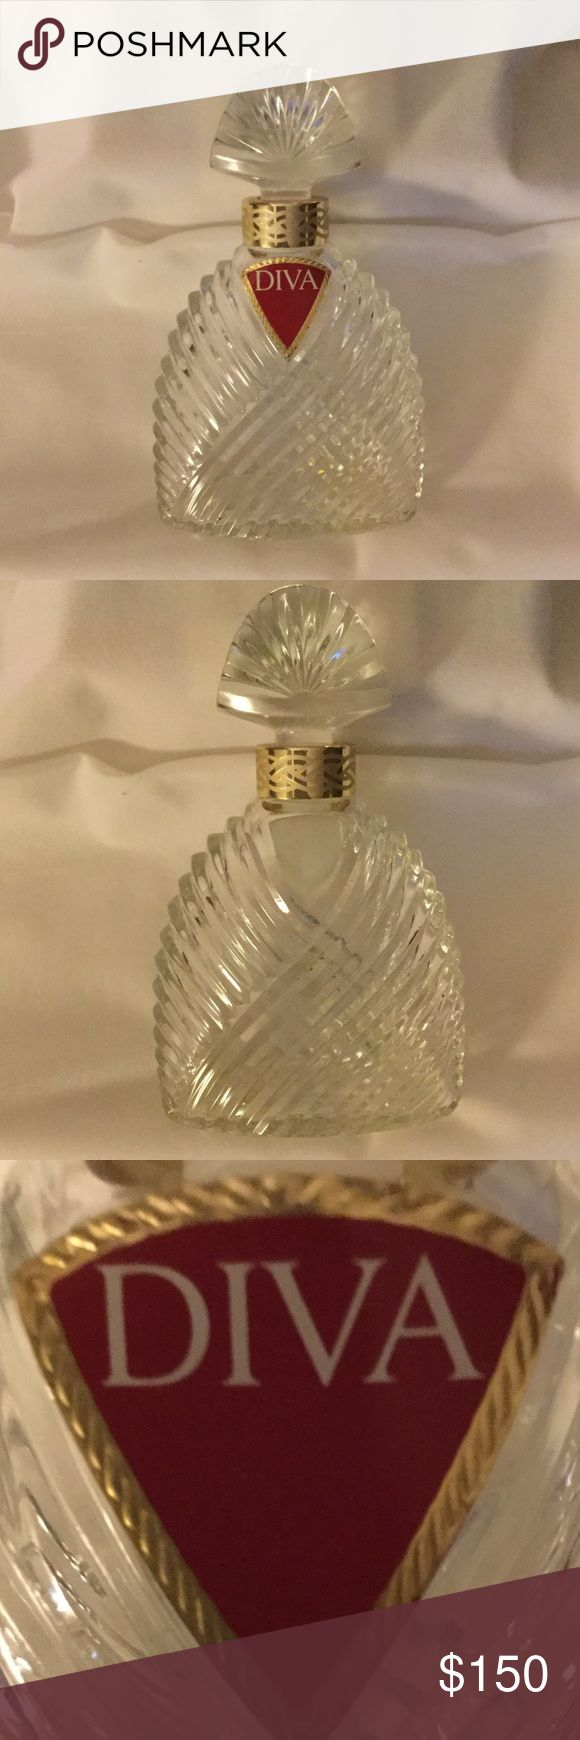 """Large DIVA Eau De Parfum Display Bottle by Ungaro VINTAGE (1983) DIVA Eau De Parfum Display Bottle by Ungaro, this bottle is a factice dummy, used for display only, perfect on a dressing table or ladies dresser for decoration. There is no perfume in the bottle, 6.75"""" tall Collectors item Ungaro Accessories"""